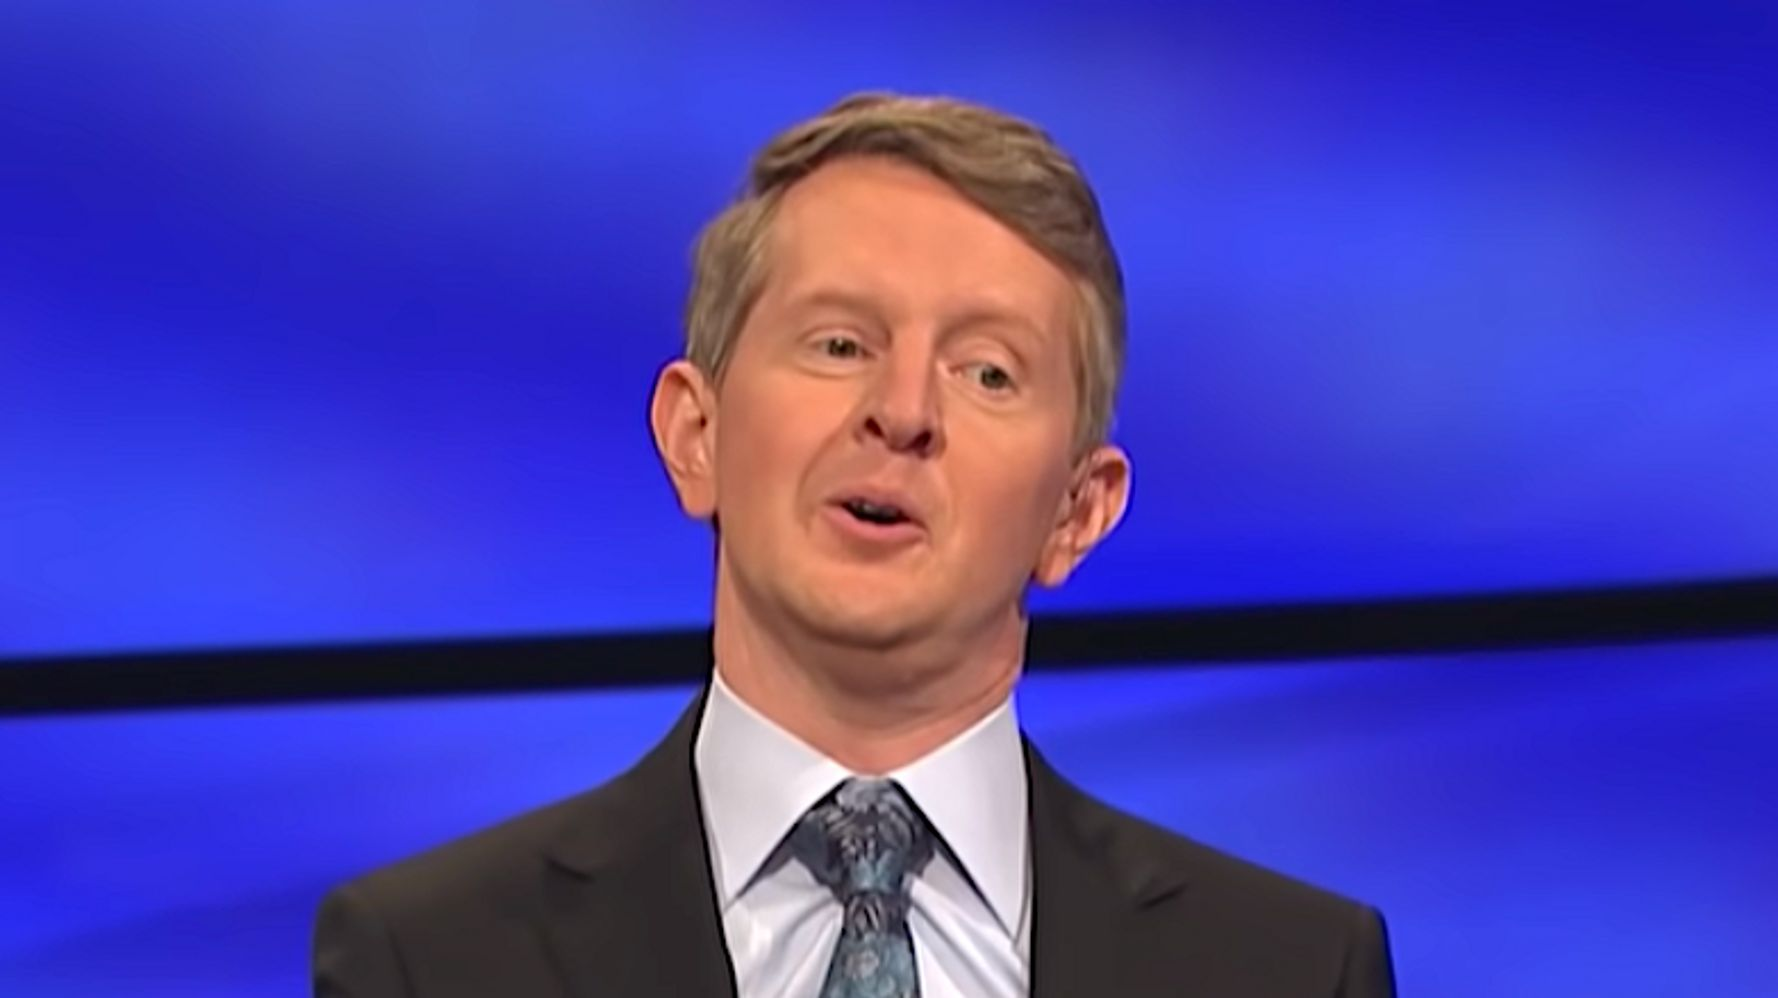 Ken Jennings Gets Owned By Cheeky Contestant On 'Jeopardy!'